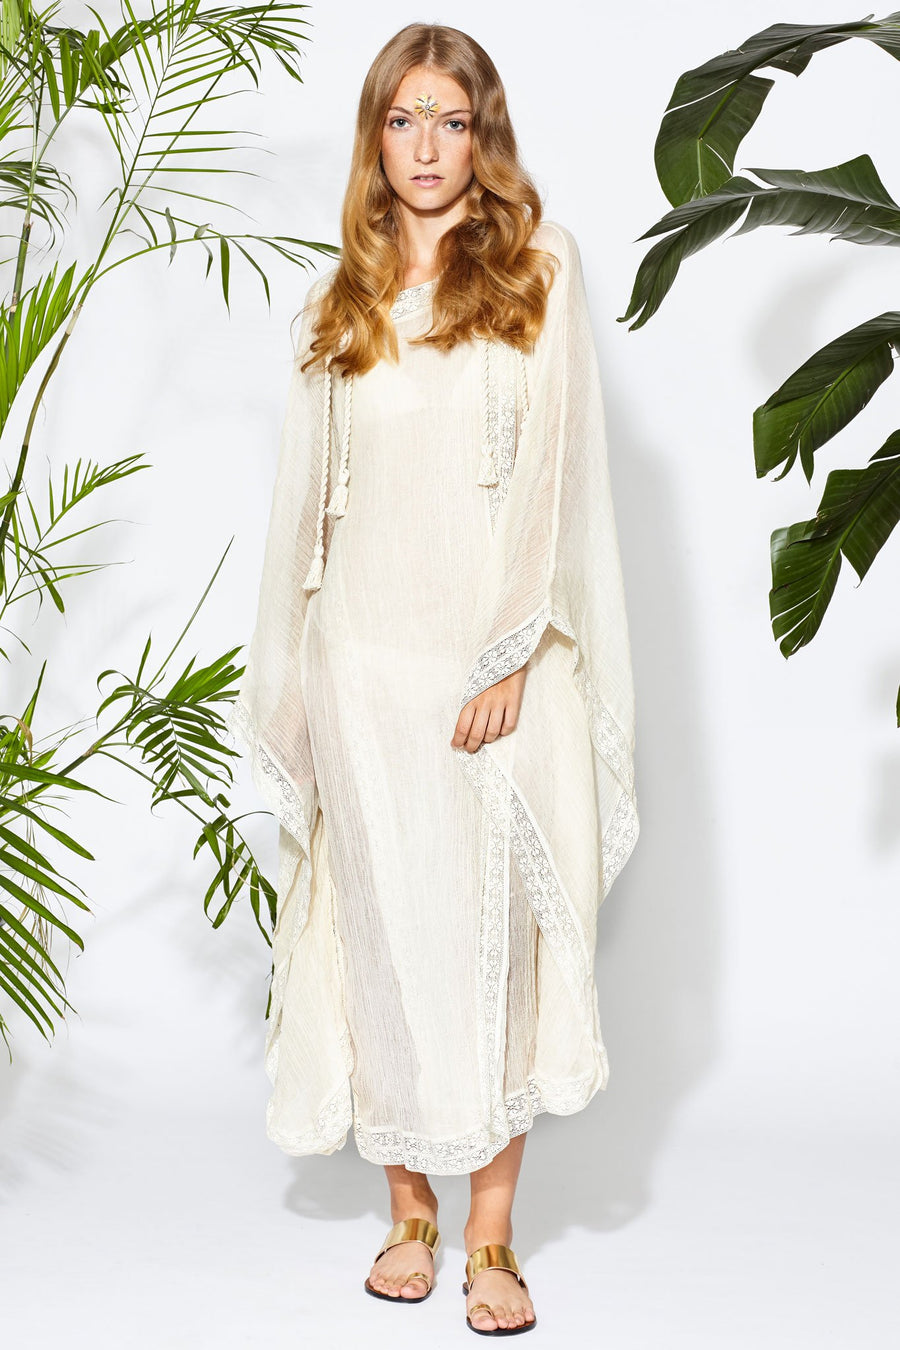 This is a photo of a woman wearing a natural colored cotton guaze coverup that is worn closed and floor length. There is lace trim on the hems and rope tassels hanging from the top where the piece was tied closed.